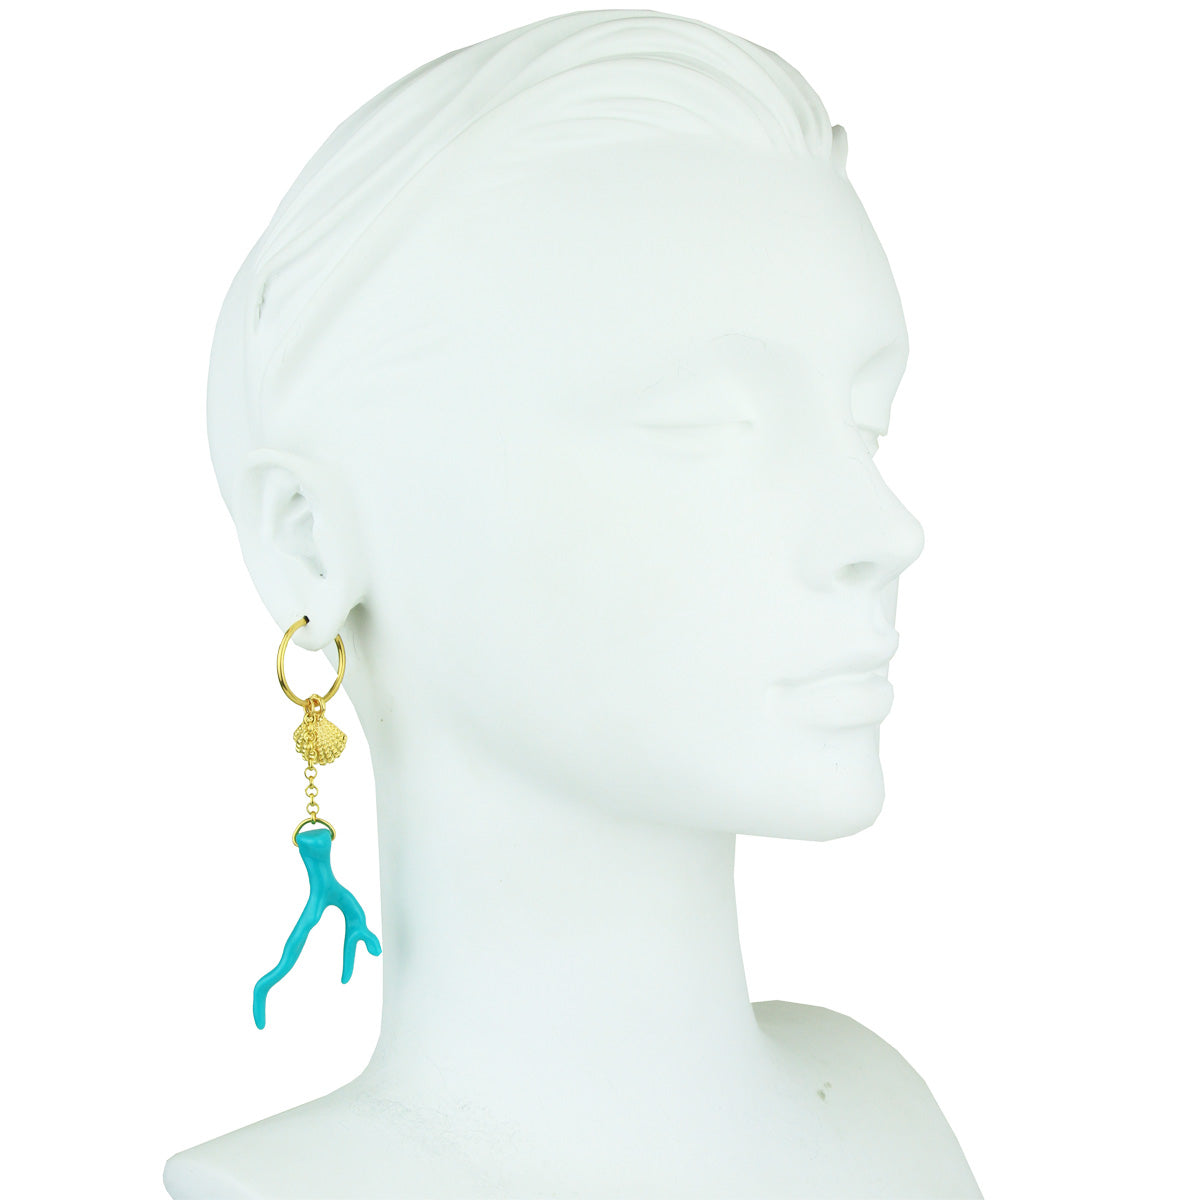 Lola Turquoise Coral Motifs and Marine Ornaments Hoop Earrings